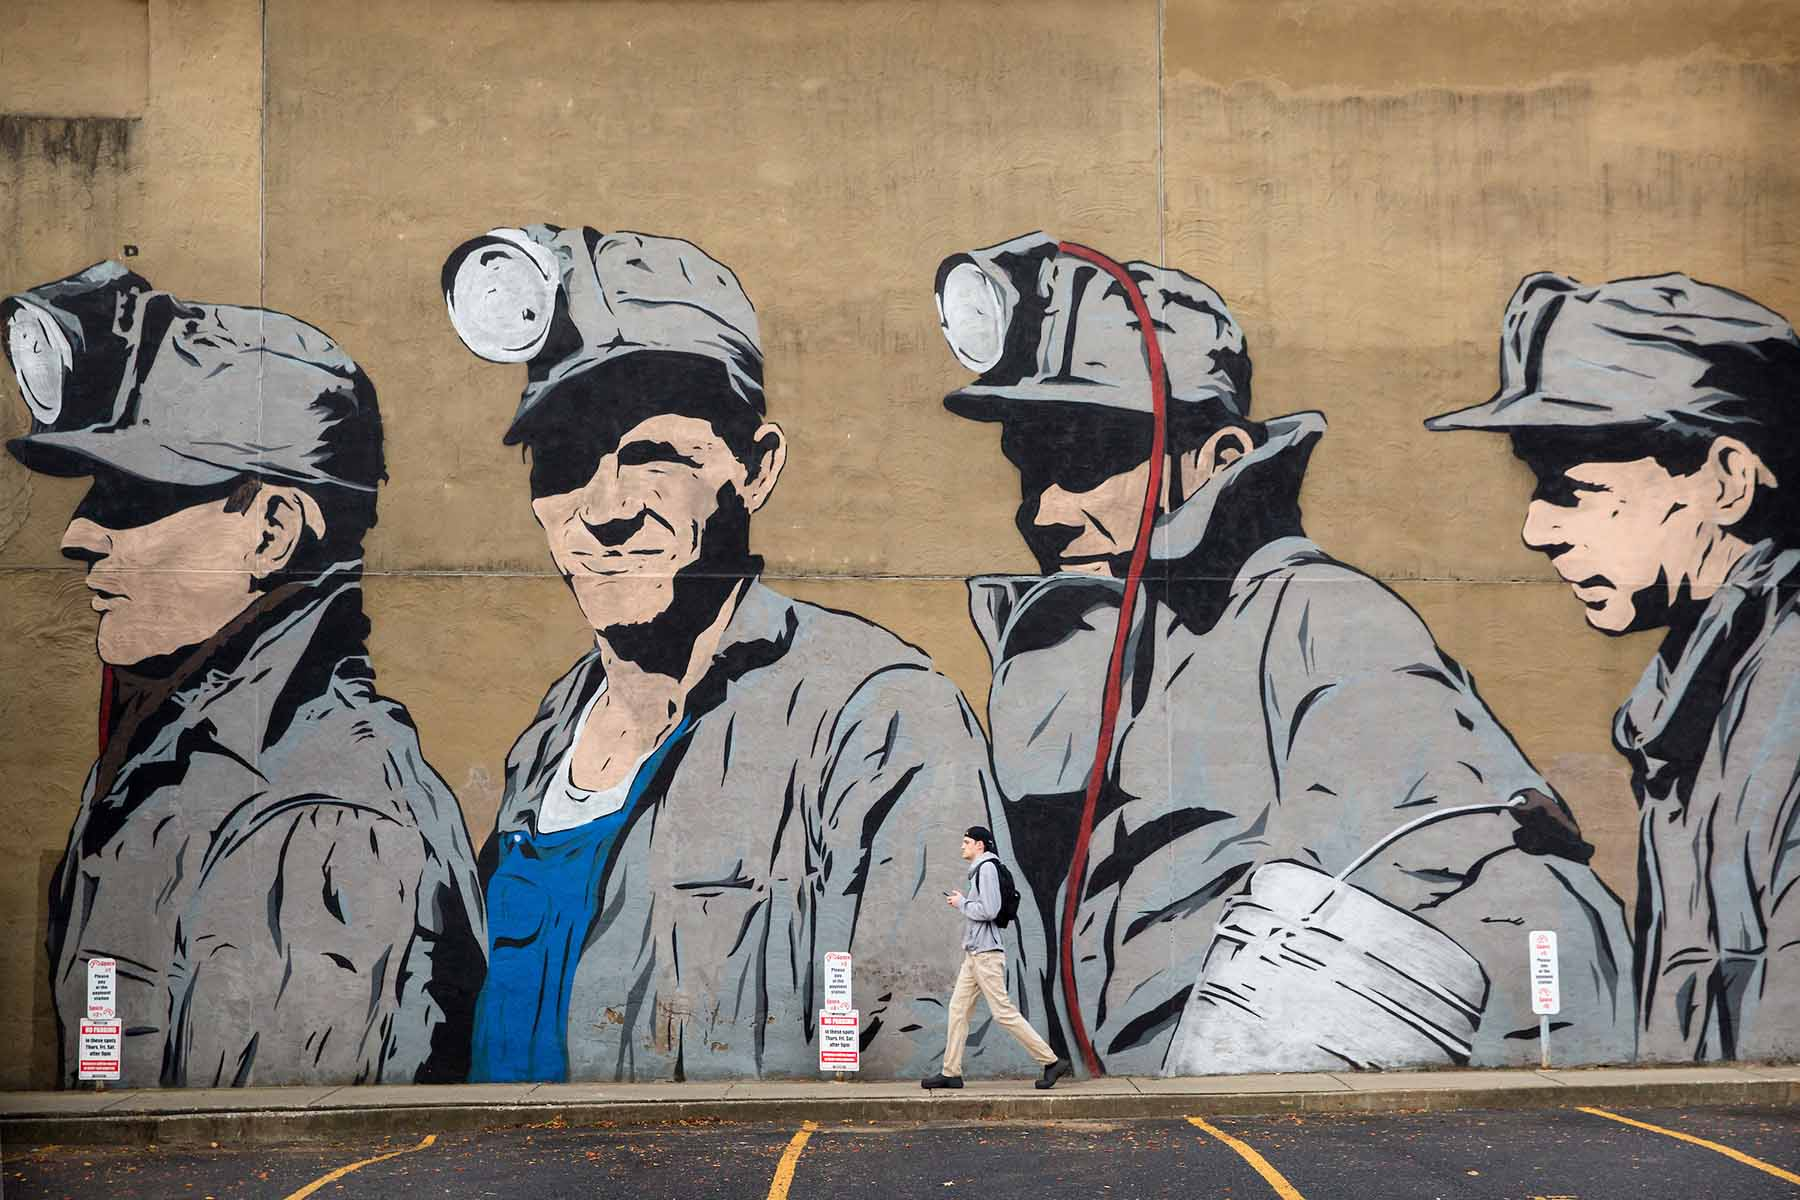 Photograph of a pedestrian passing ther coal mine mural in Uptown district or Athens, Ohio on Oct. 27, 2016. The mural was created by Chris Stain with the help of Ohio University Fine Arts students